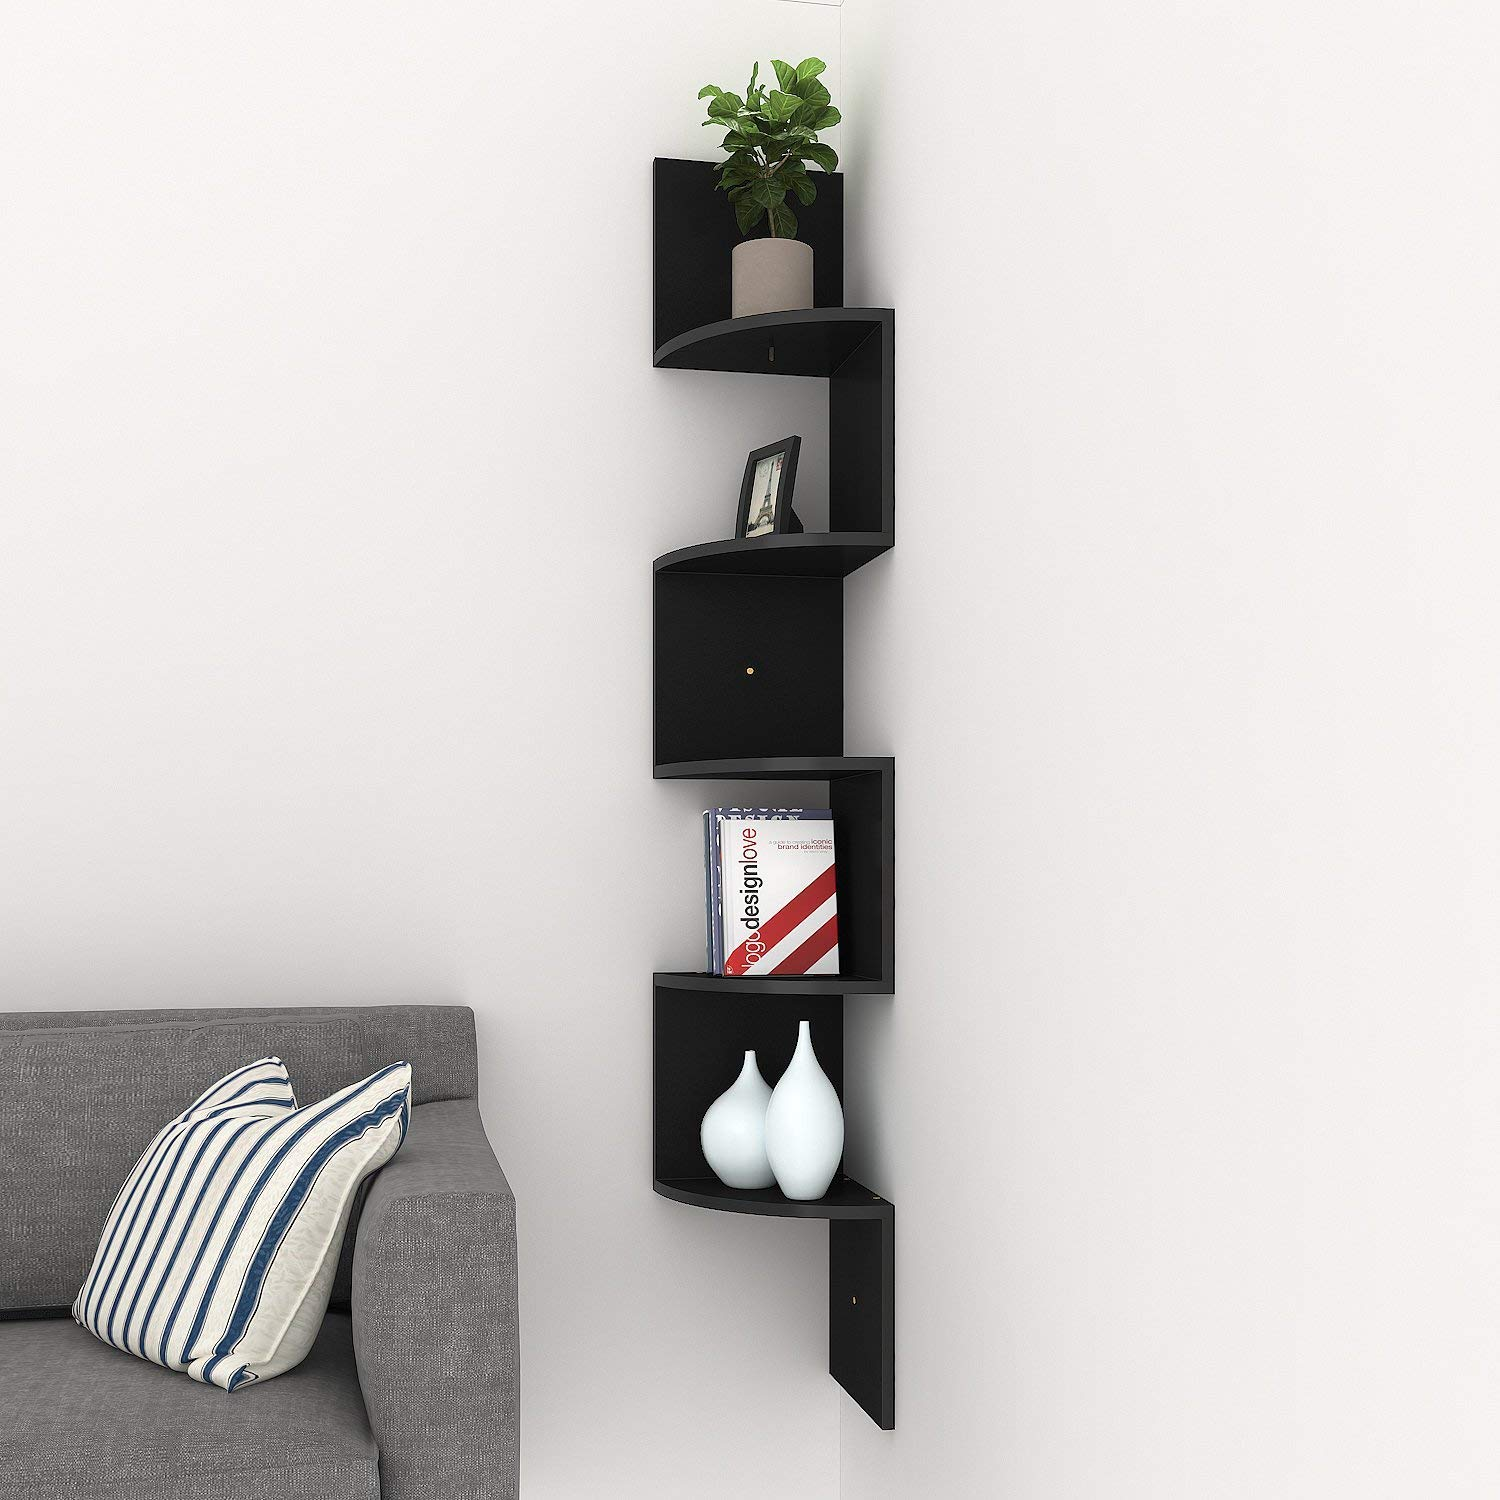 Homdox Corner Shelf, 5 Tier Corner Shelves Zig Zag Wall Mount Shelves  Floating Shelves for Living Room, Bedroom, Bathroom, Office, Kitchen (Black)